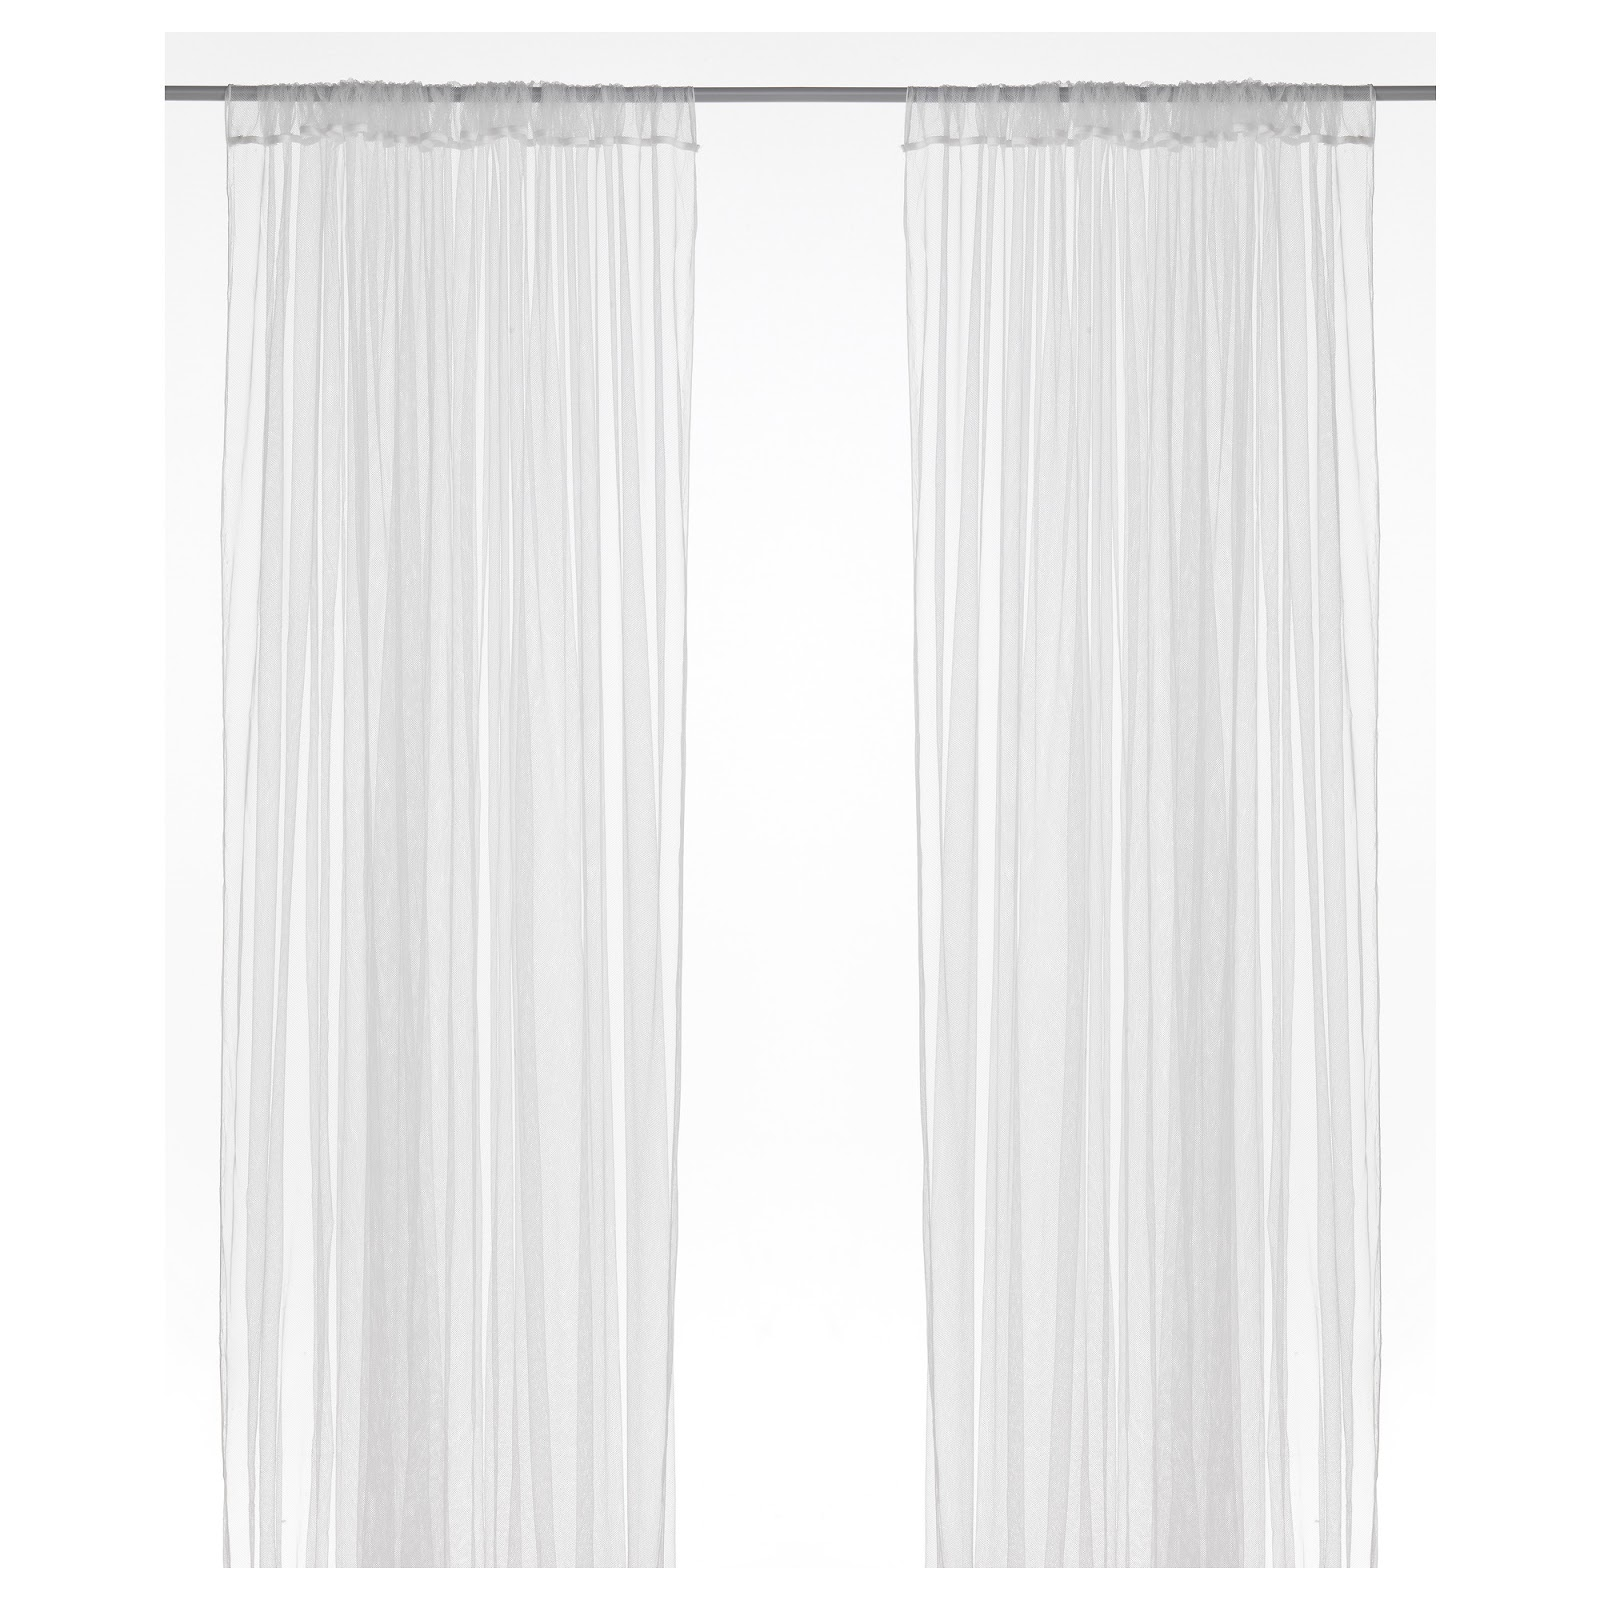 Curtains For The Bathroom Window Bedroom Kitchen Living Room